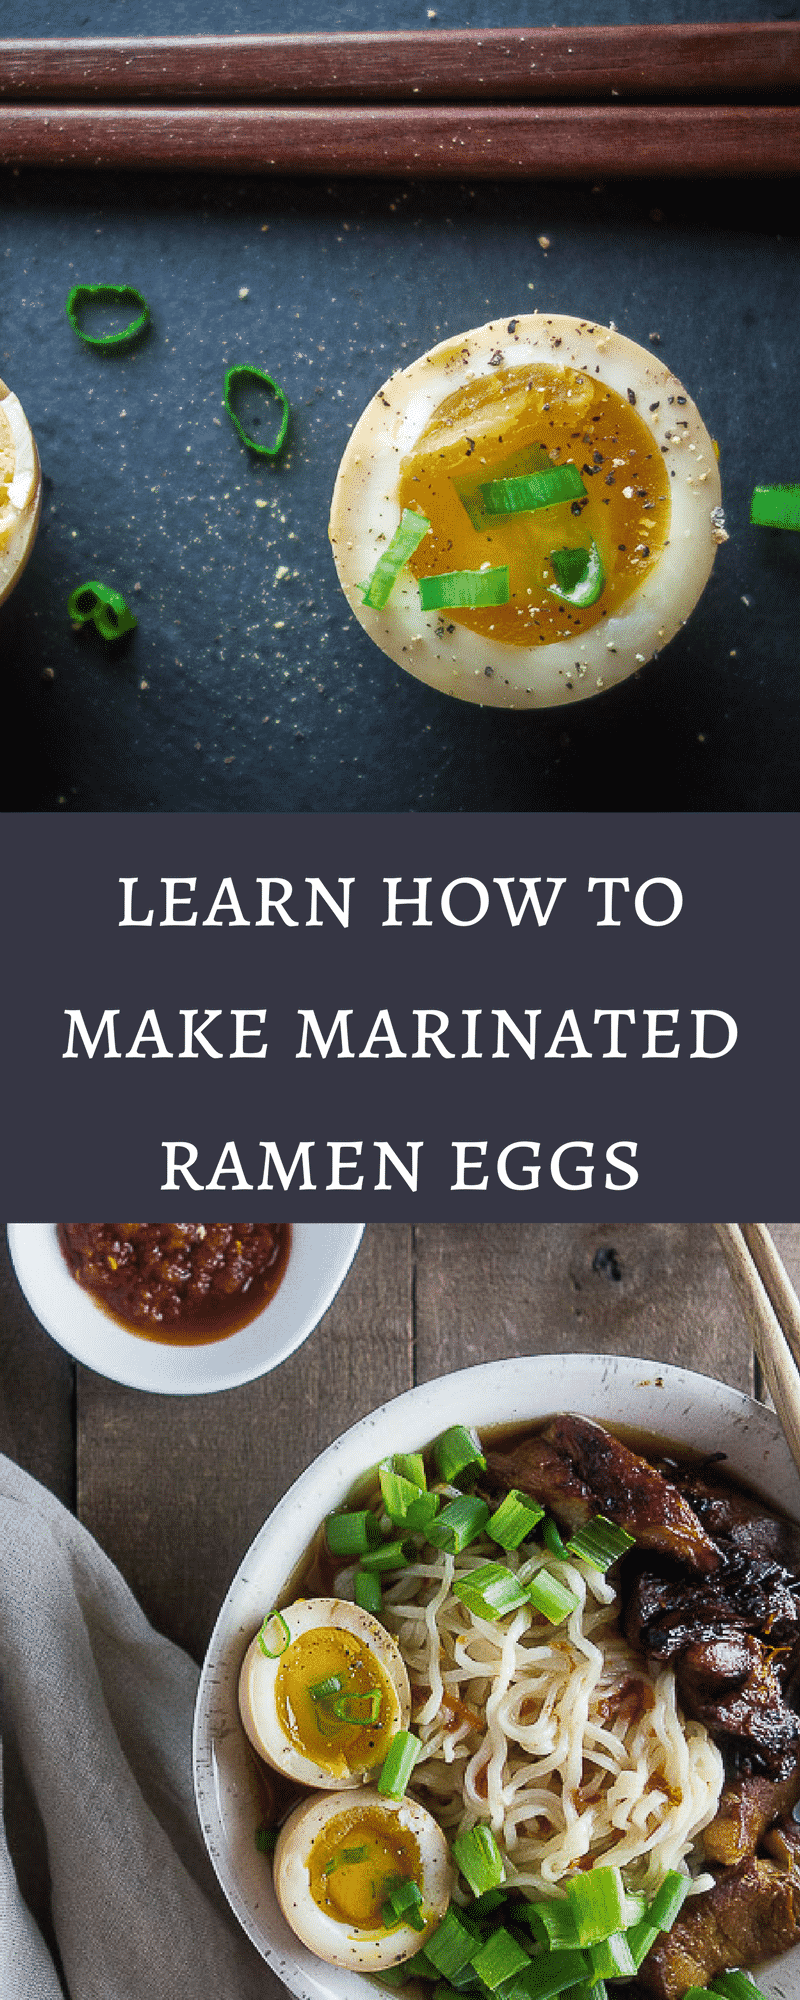 Learn how to make marinated ramen eggs with that gooey yolky center and delicious umami flavor. Perfect for that bowl of ramen, or just as a snack! ramen egg recipe | marinated soy sauce eggs | how to make ramen eggs | how to soft boil eggs | easy ramen eggs | japanese ramen eggs | japanese soy sauce eggs | ajitsuke tamago | healthy eggs | shoyu tamago